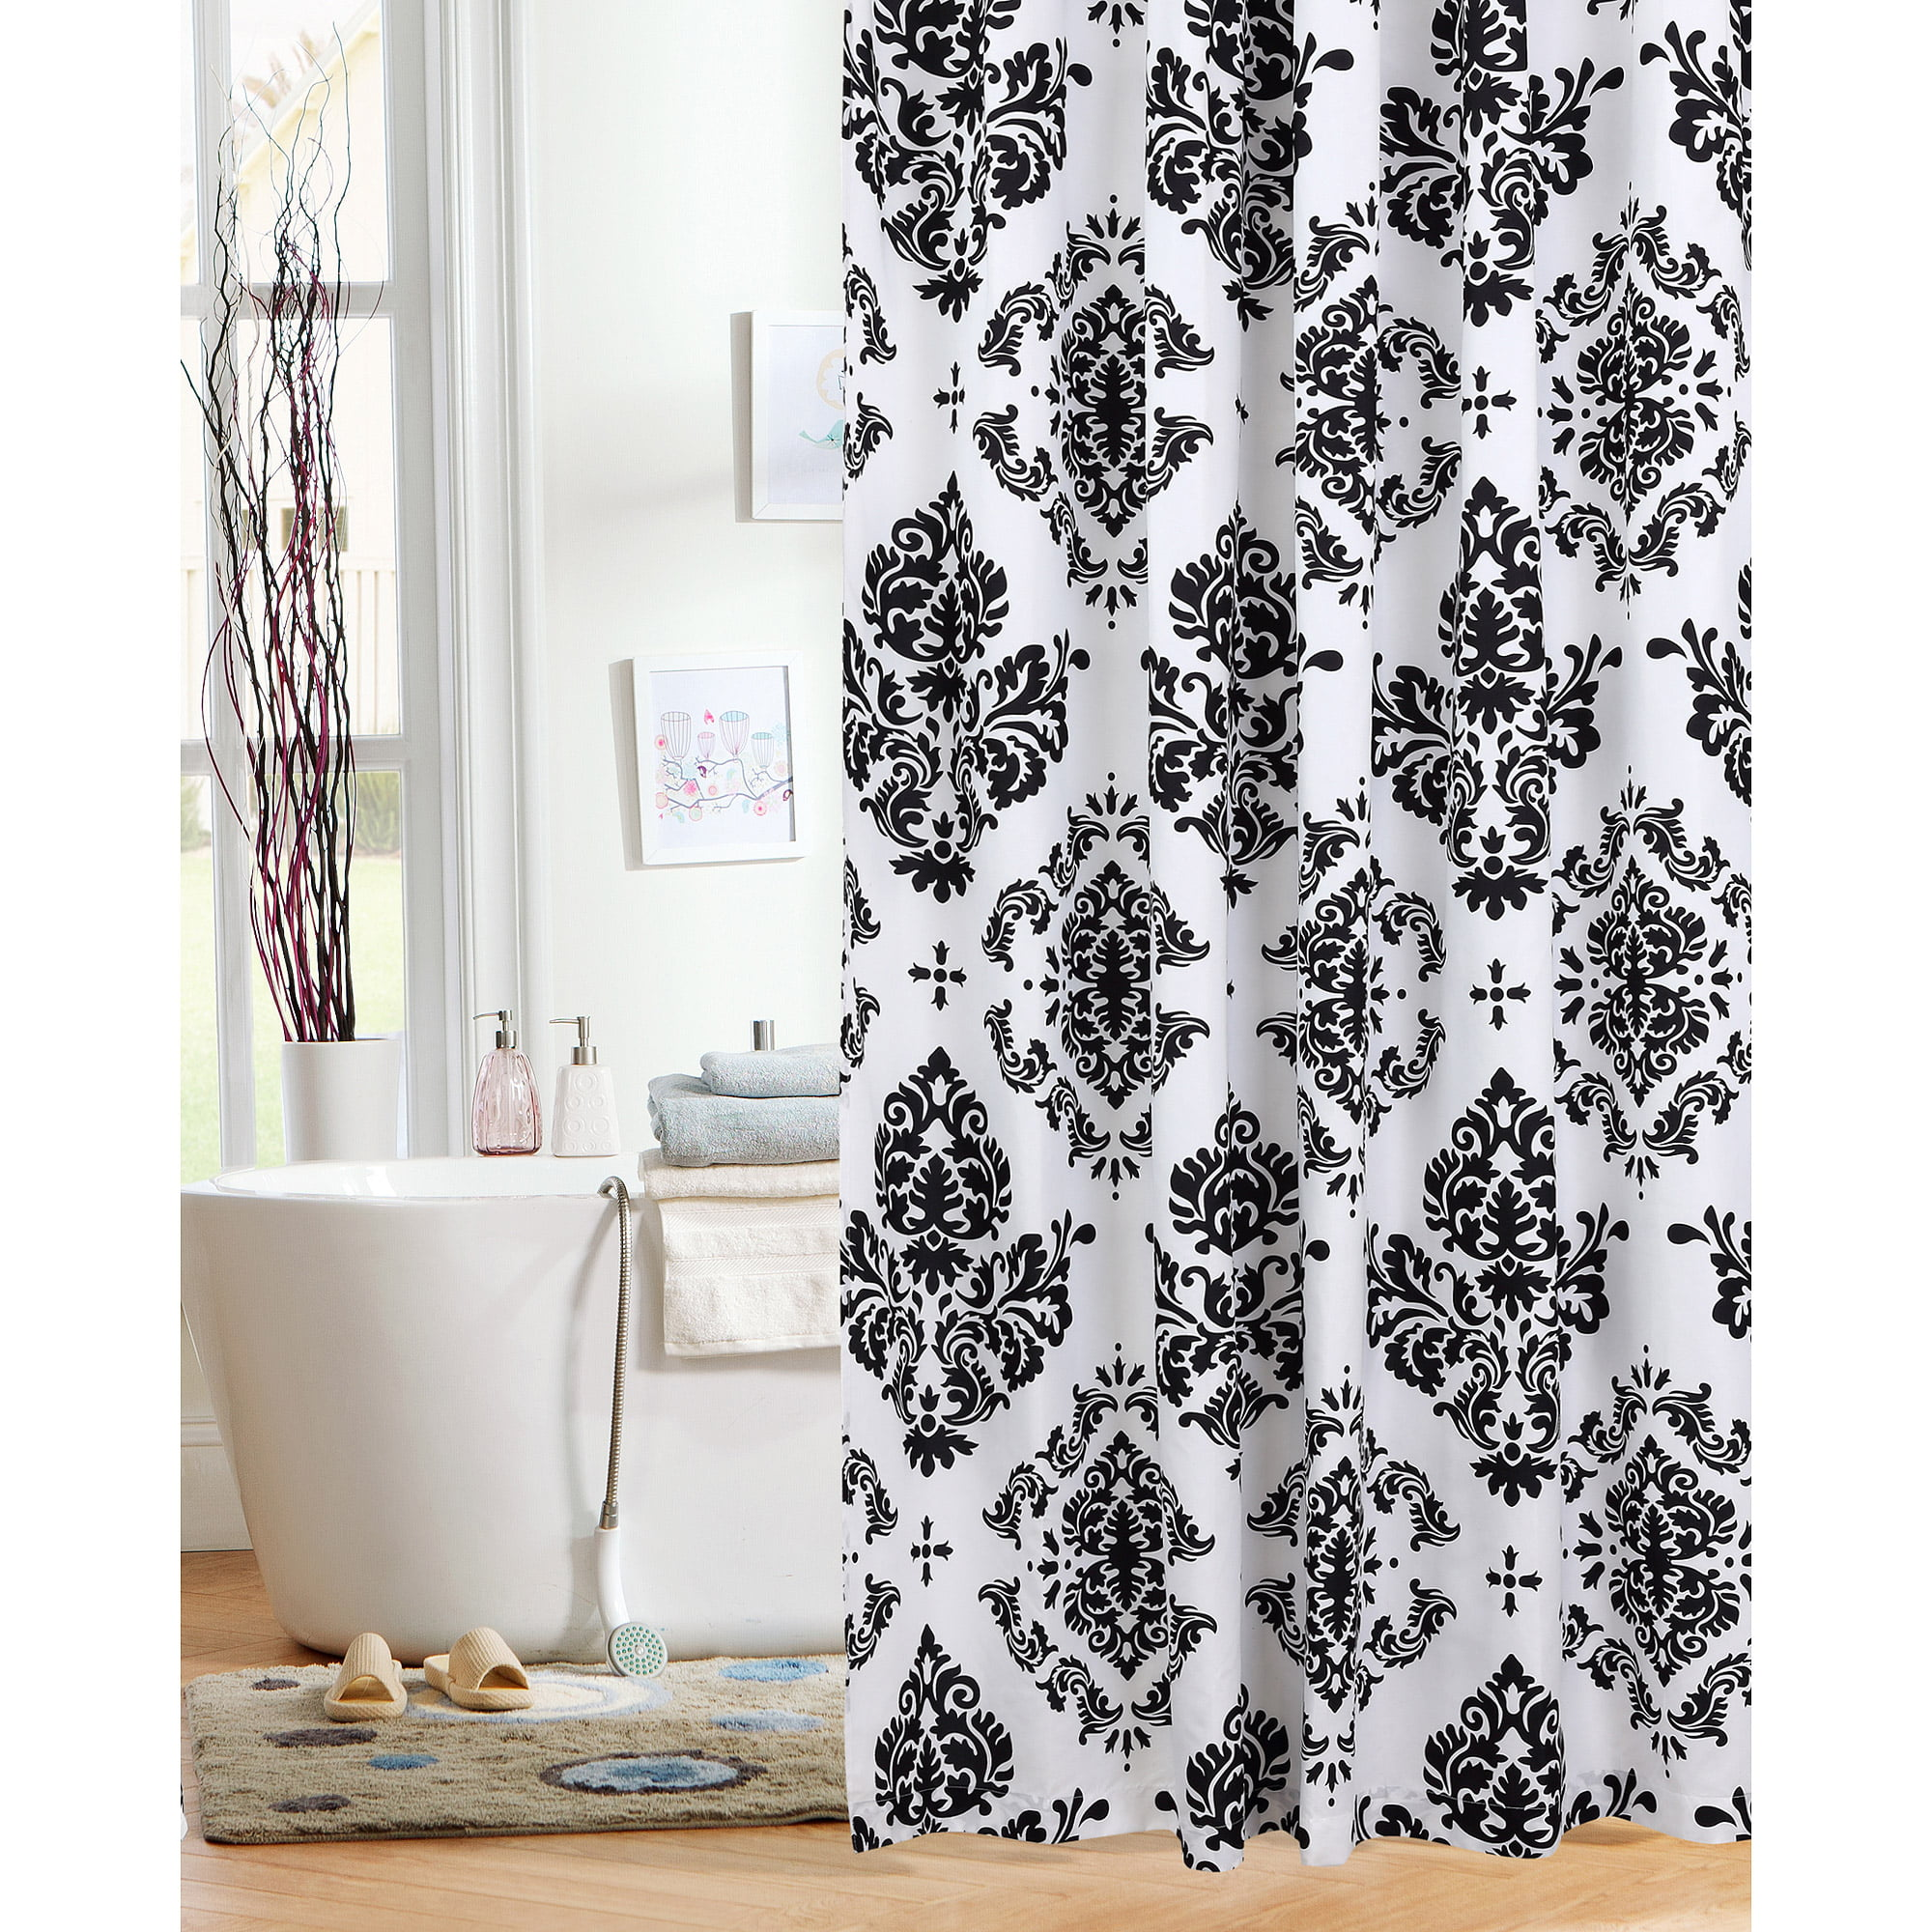 Mainstays Classic Noir Fabric Shower Curtain - Walmart.com